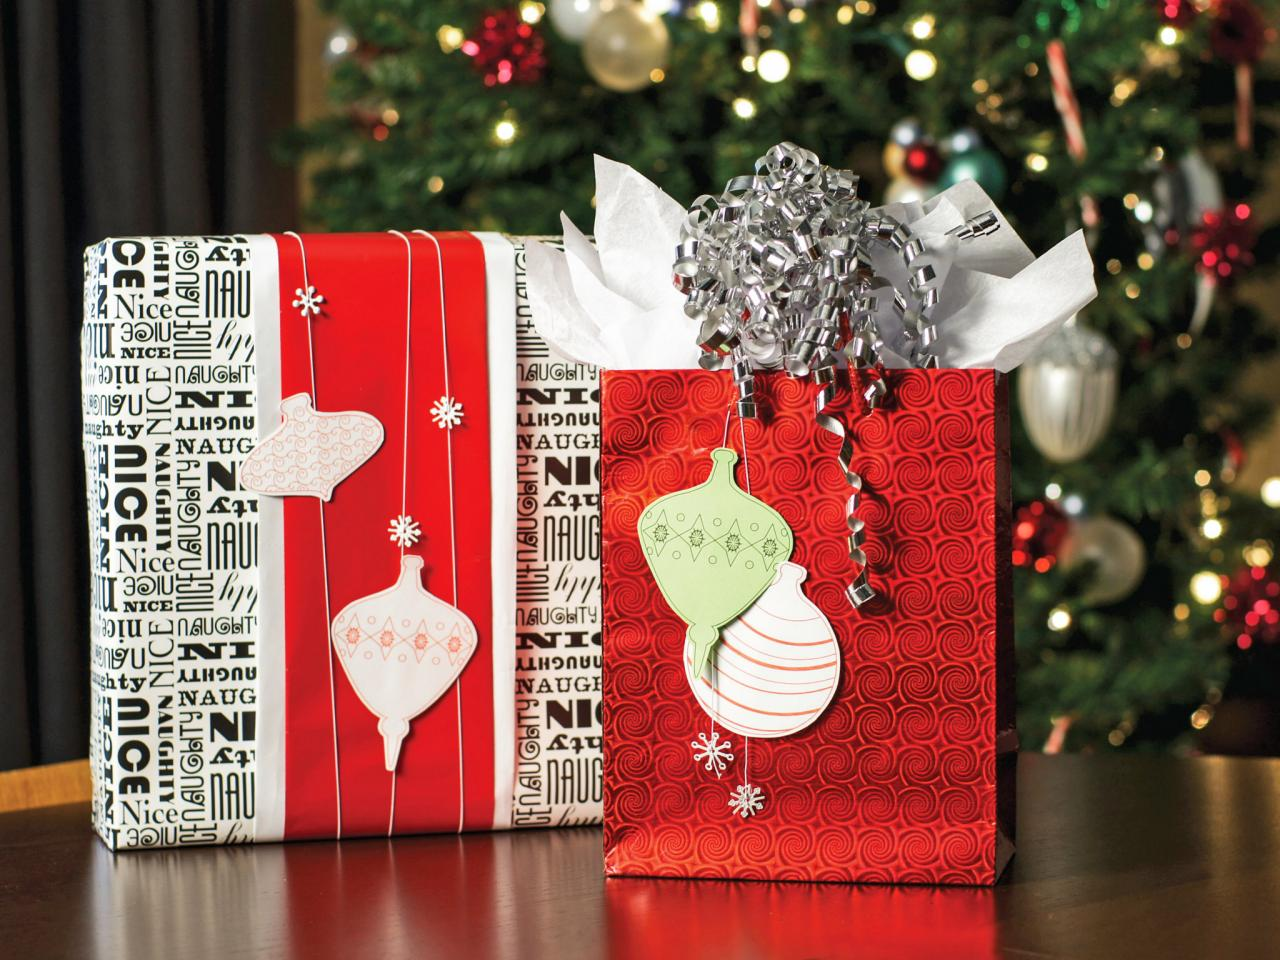 mod holiday gift wrapping ideas - Christmas Gift Decorations